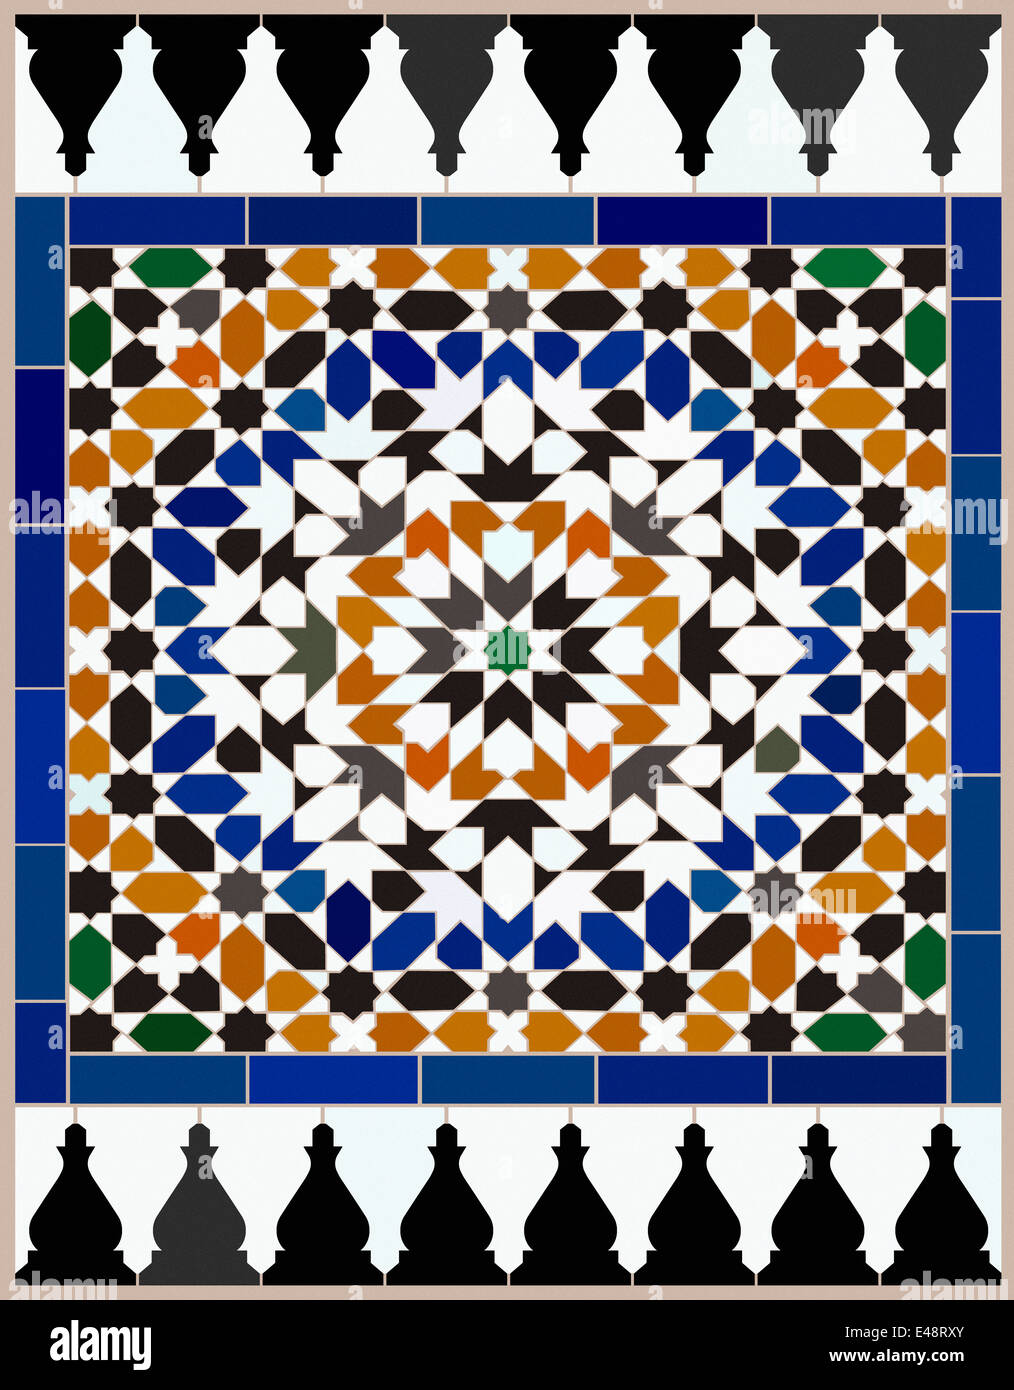 area made mosaic tiles based on a moroccan design with complex